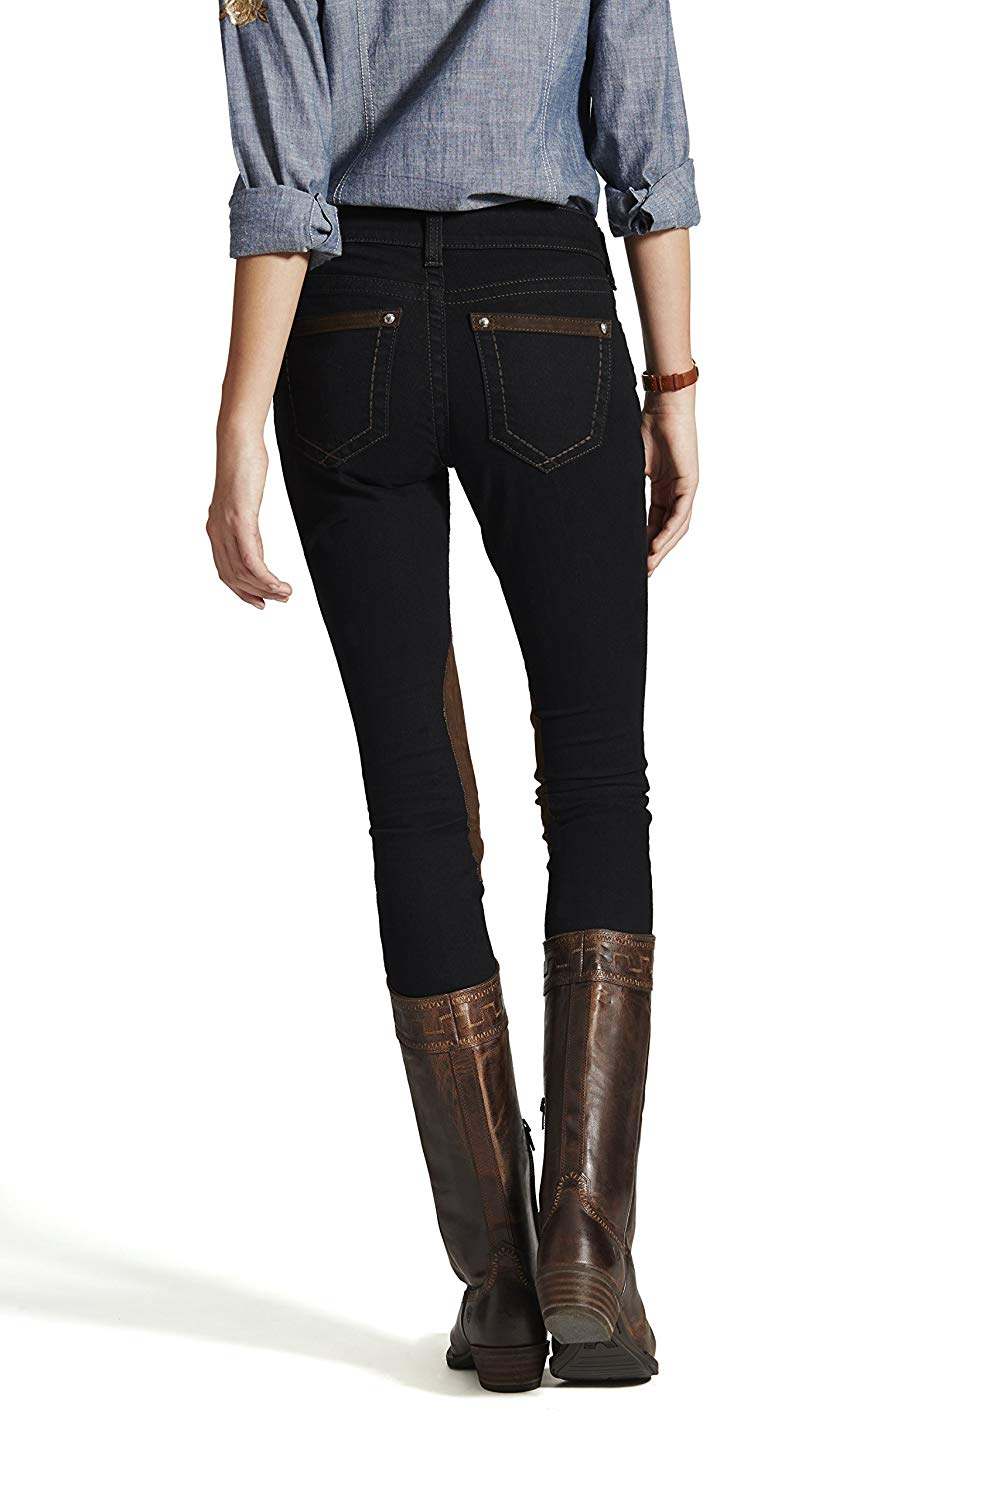 Ariat Onyx Straight Edge Knee Patch Breech*